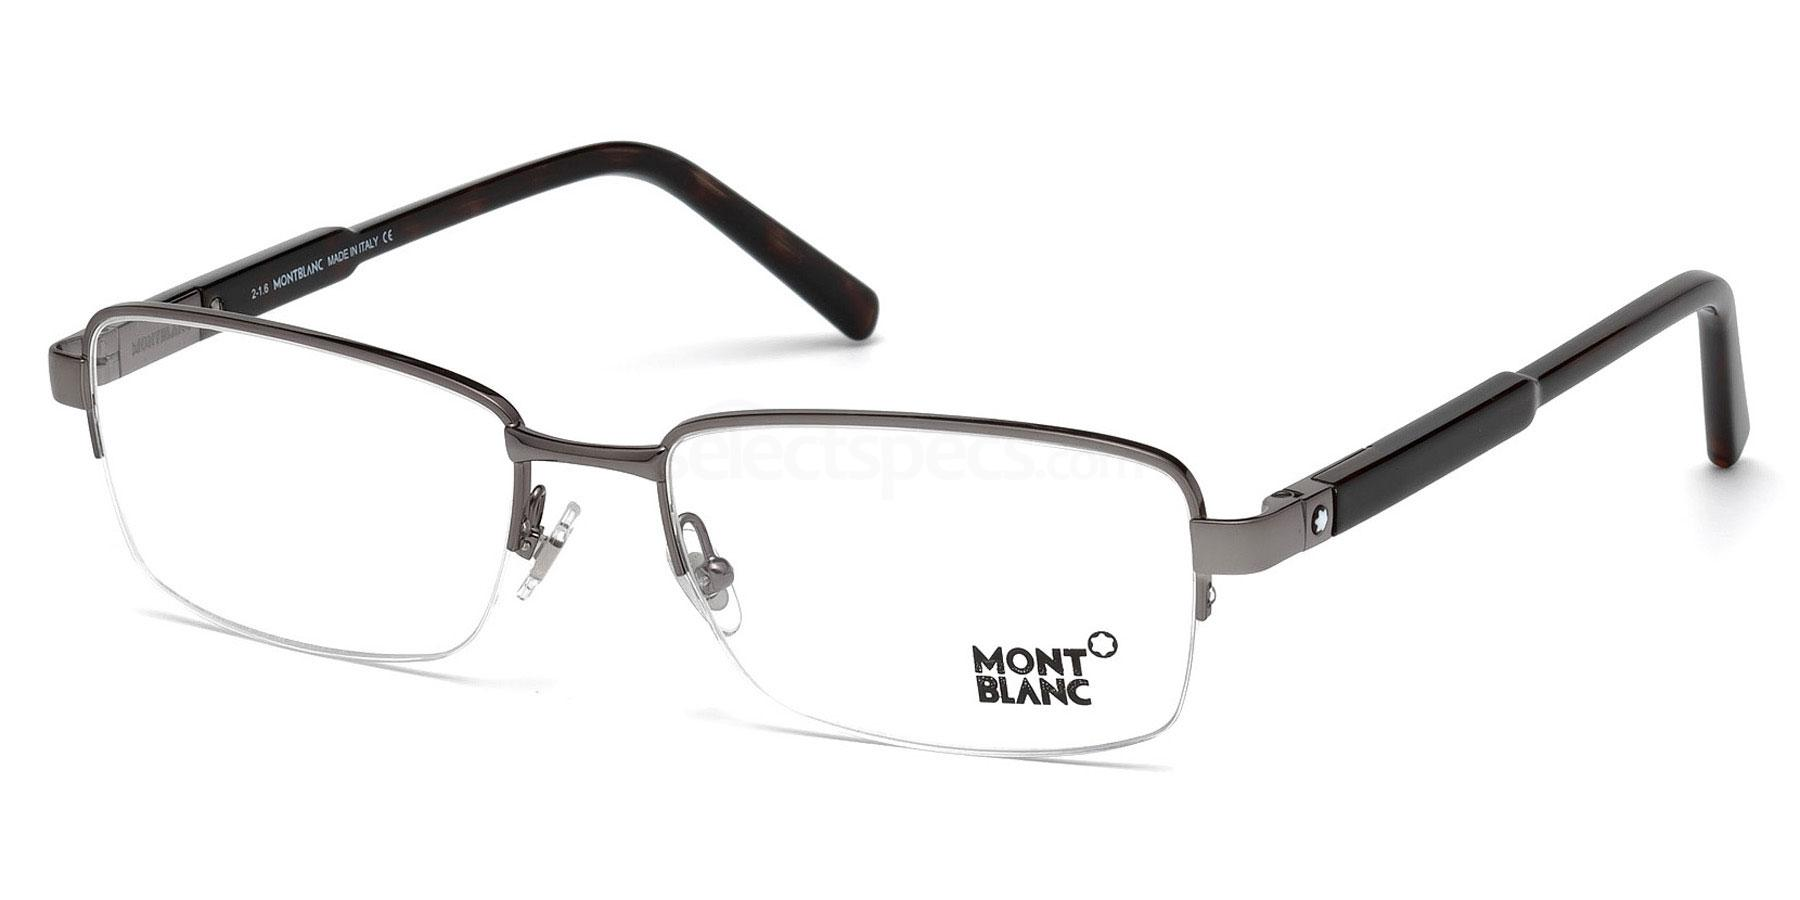 014 MB0635 Glasses, Mont Blanc